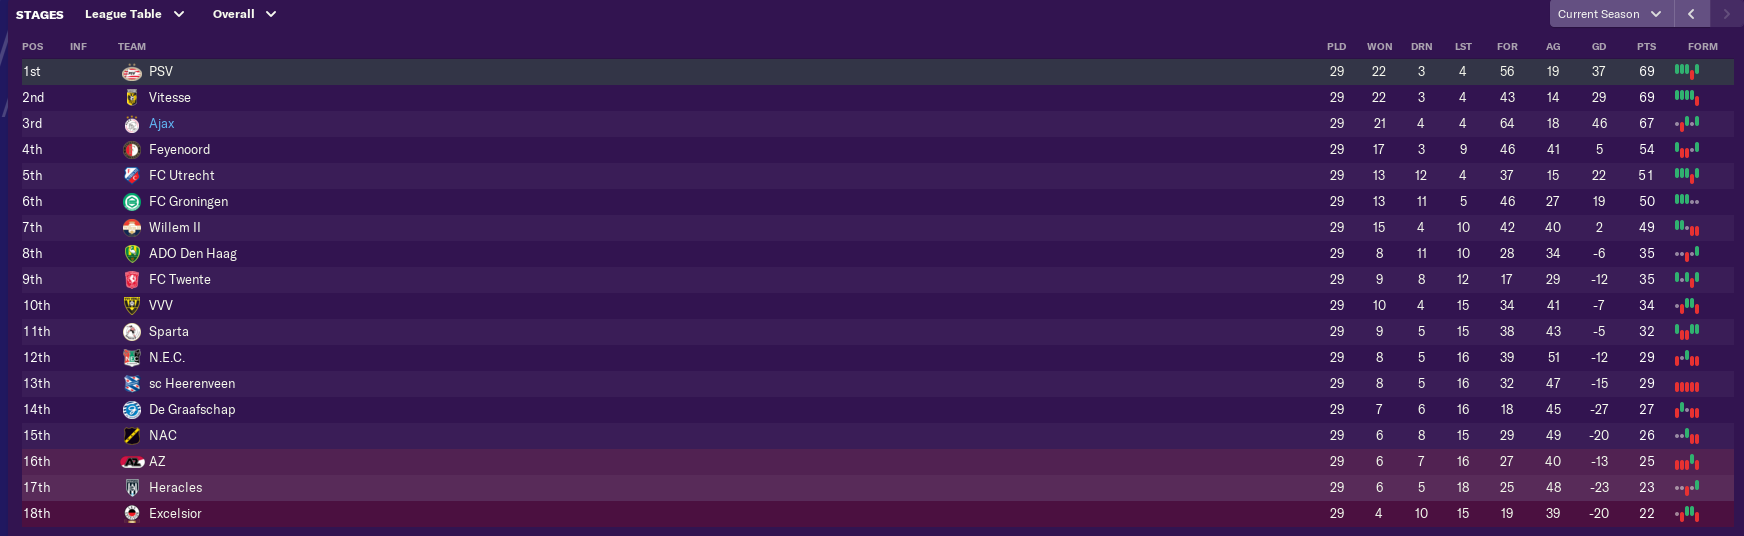 march-league-table.png